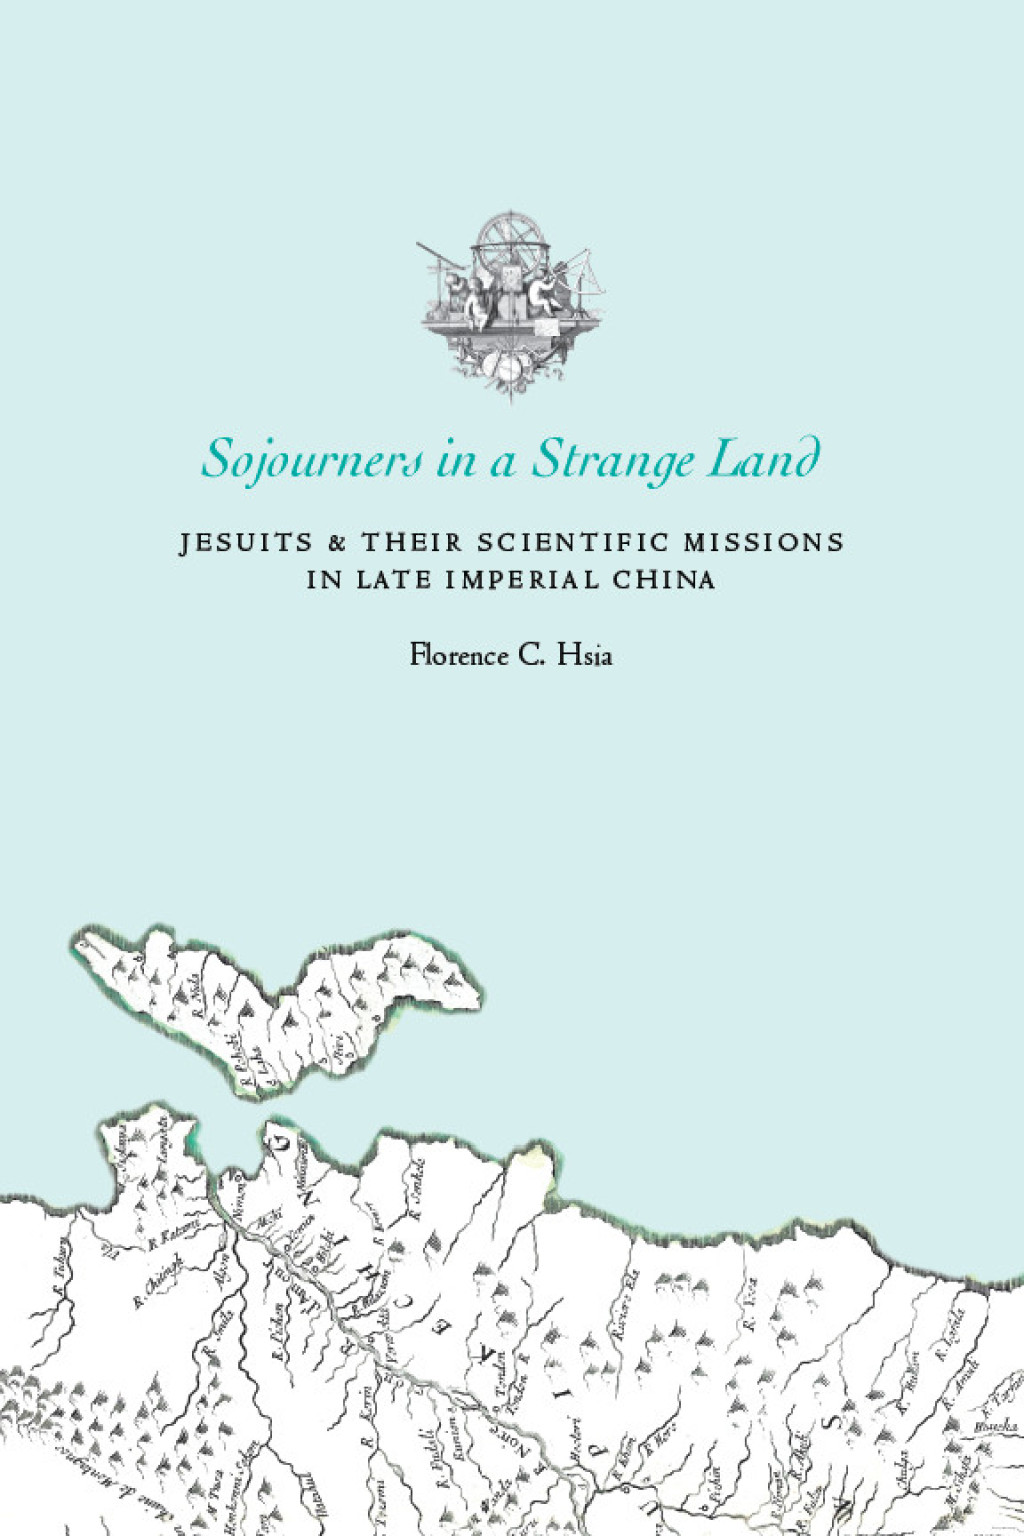 Sojourners in a Strange Land: Jesuits and Their Scientific Missions in Late Imperial China (ebook) eBooks